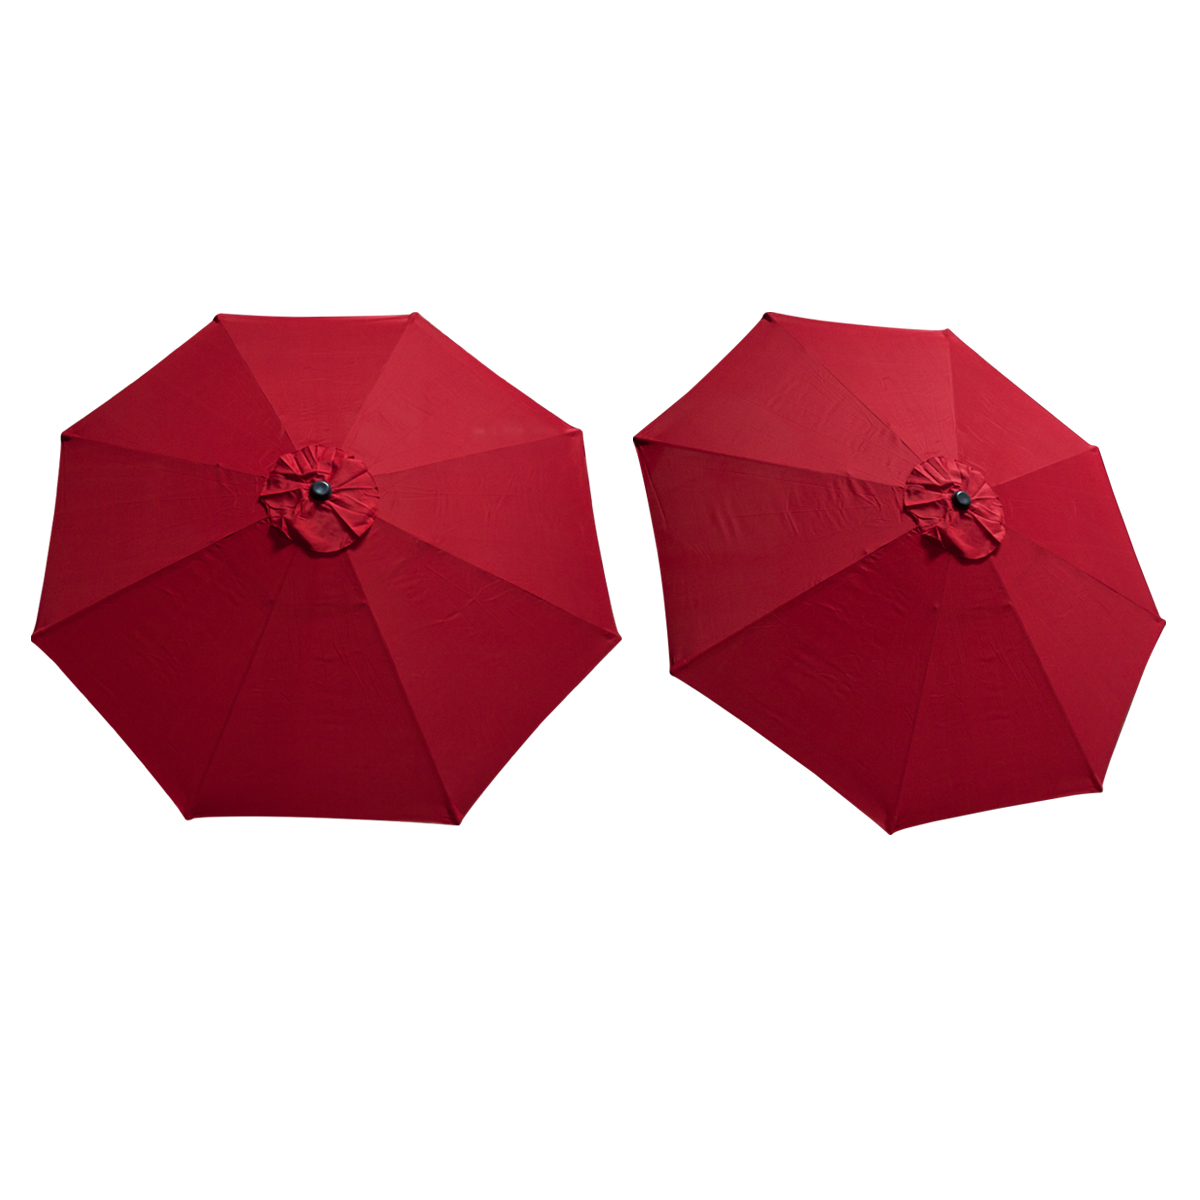 Patio Umbrella Material Replacement: Replacement Cover Canopy 9 FT 8 Ribs Umbrella Red Top